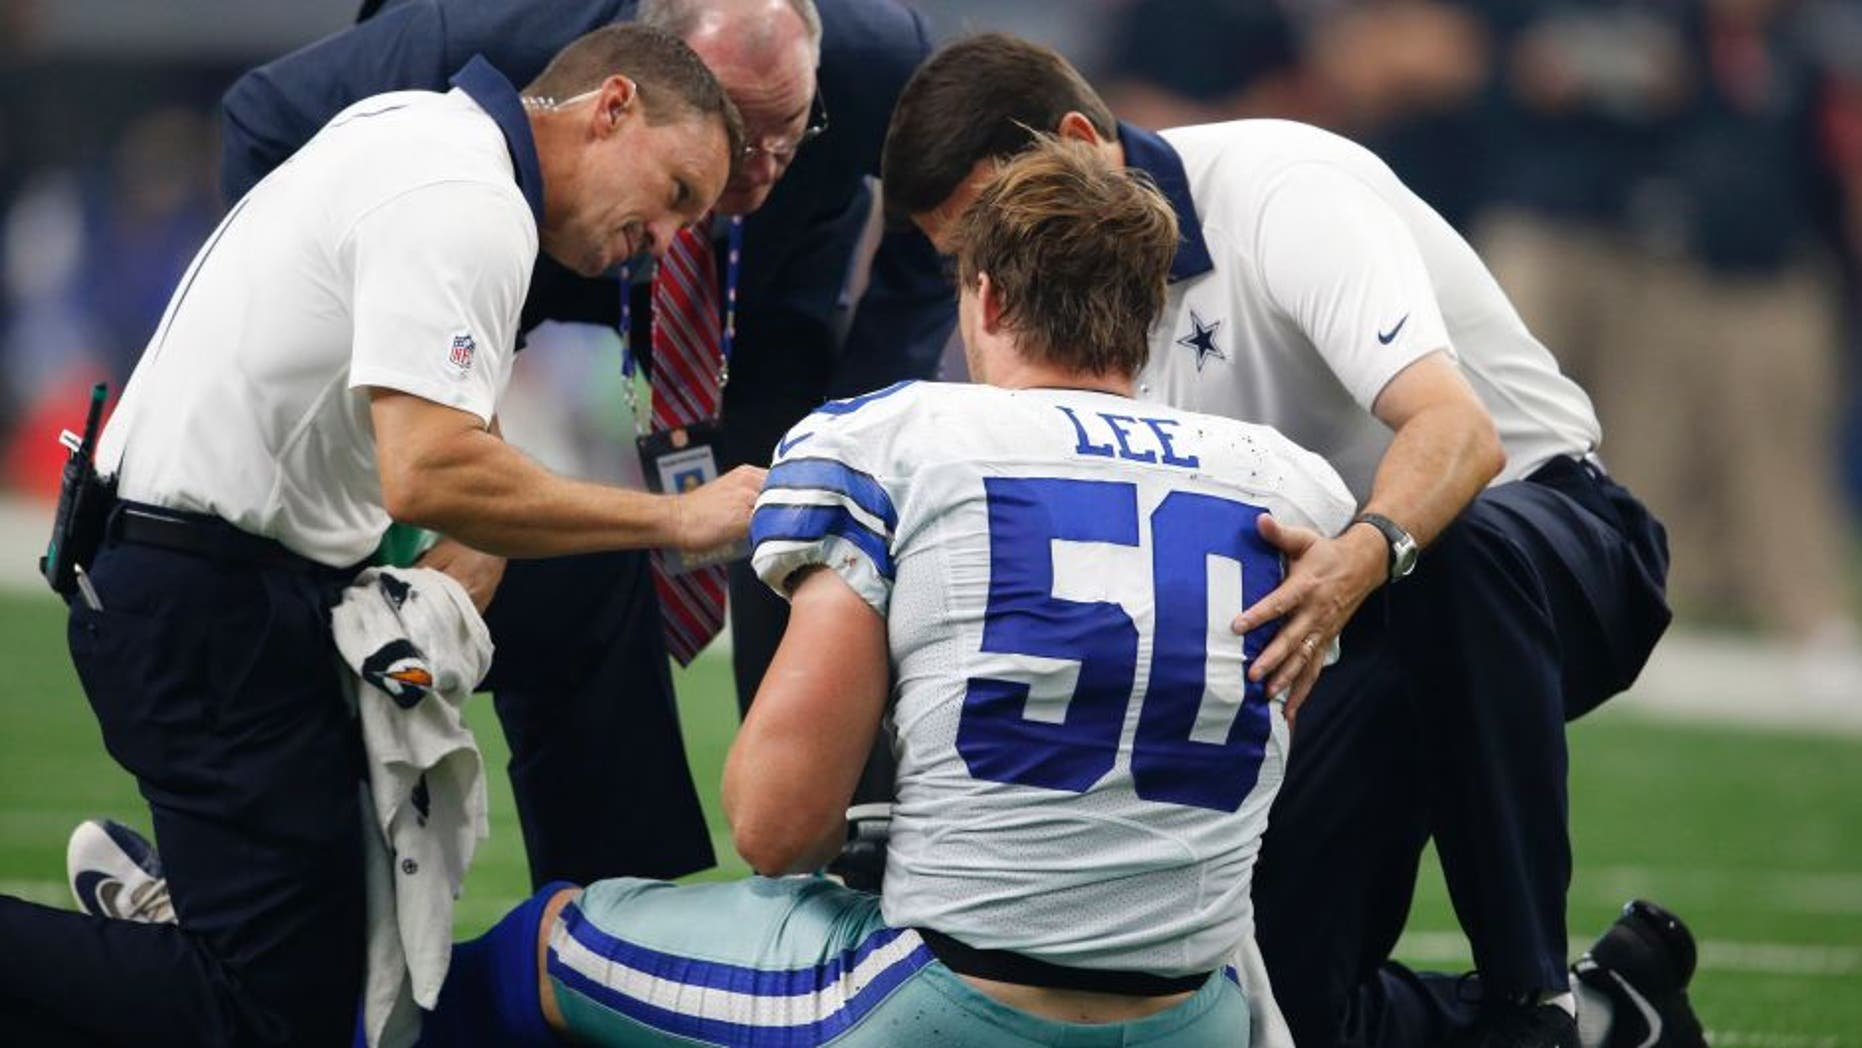 Sep 27, 2015; Arlington, TX, USA; Dallas Cowboys linebacker Sean Lee (50) is attended to after an injury in the third quarter against the Atlanta Falcons at AT&T Stadium. Mandatory Credit: Matthew Emmons-USA TODAY Sports